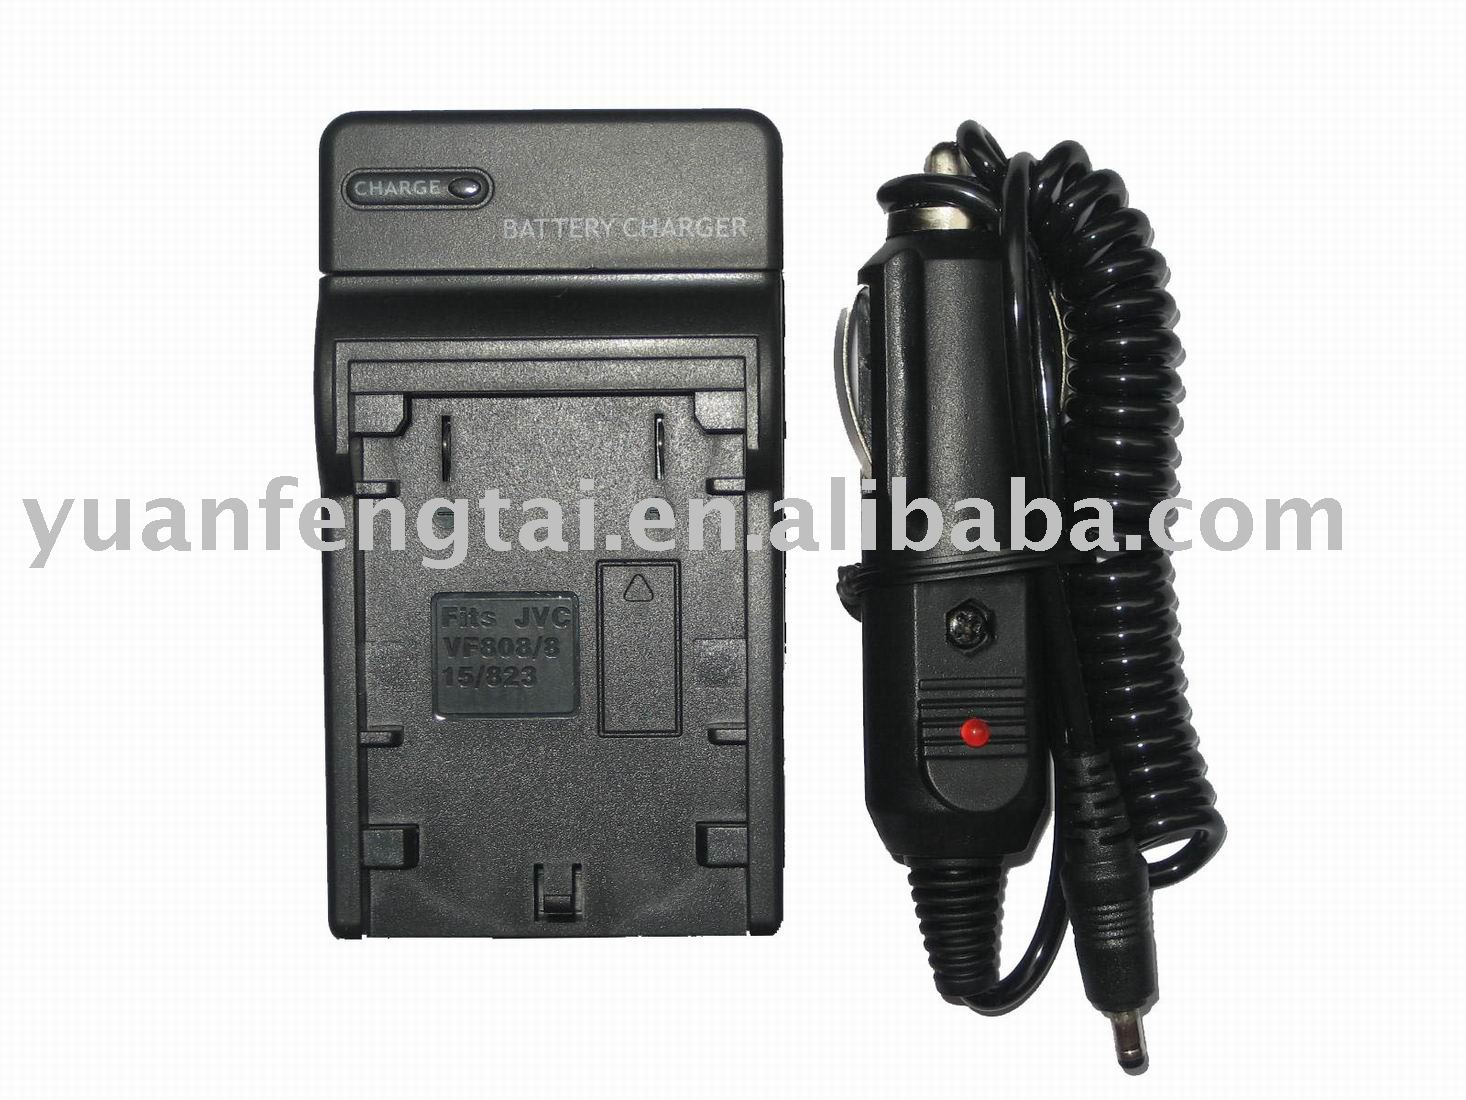 BN-VF823 Battery Charger Camcorder Battery Charger for JVC BN-VF823